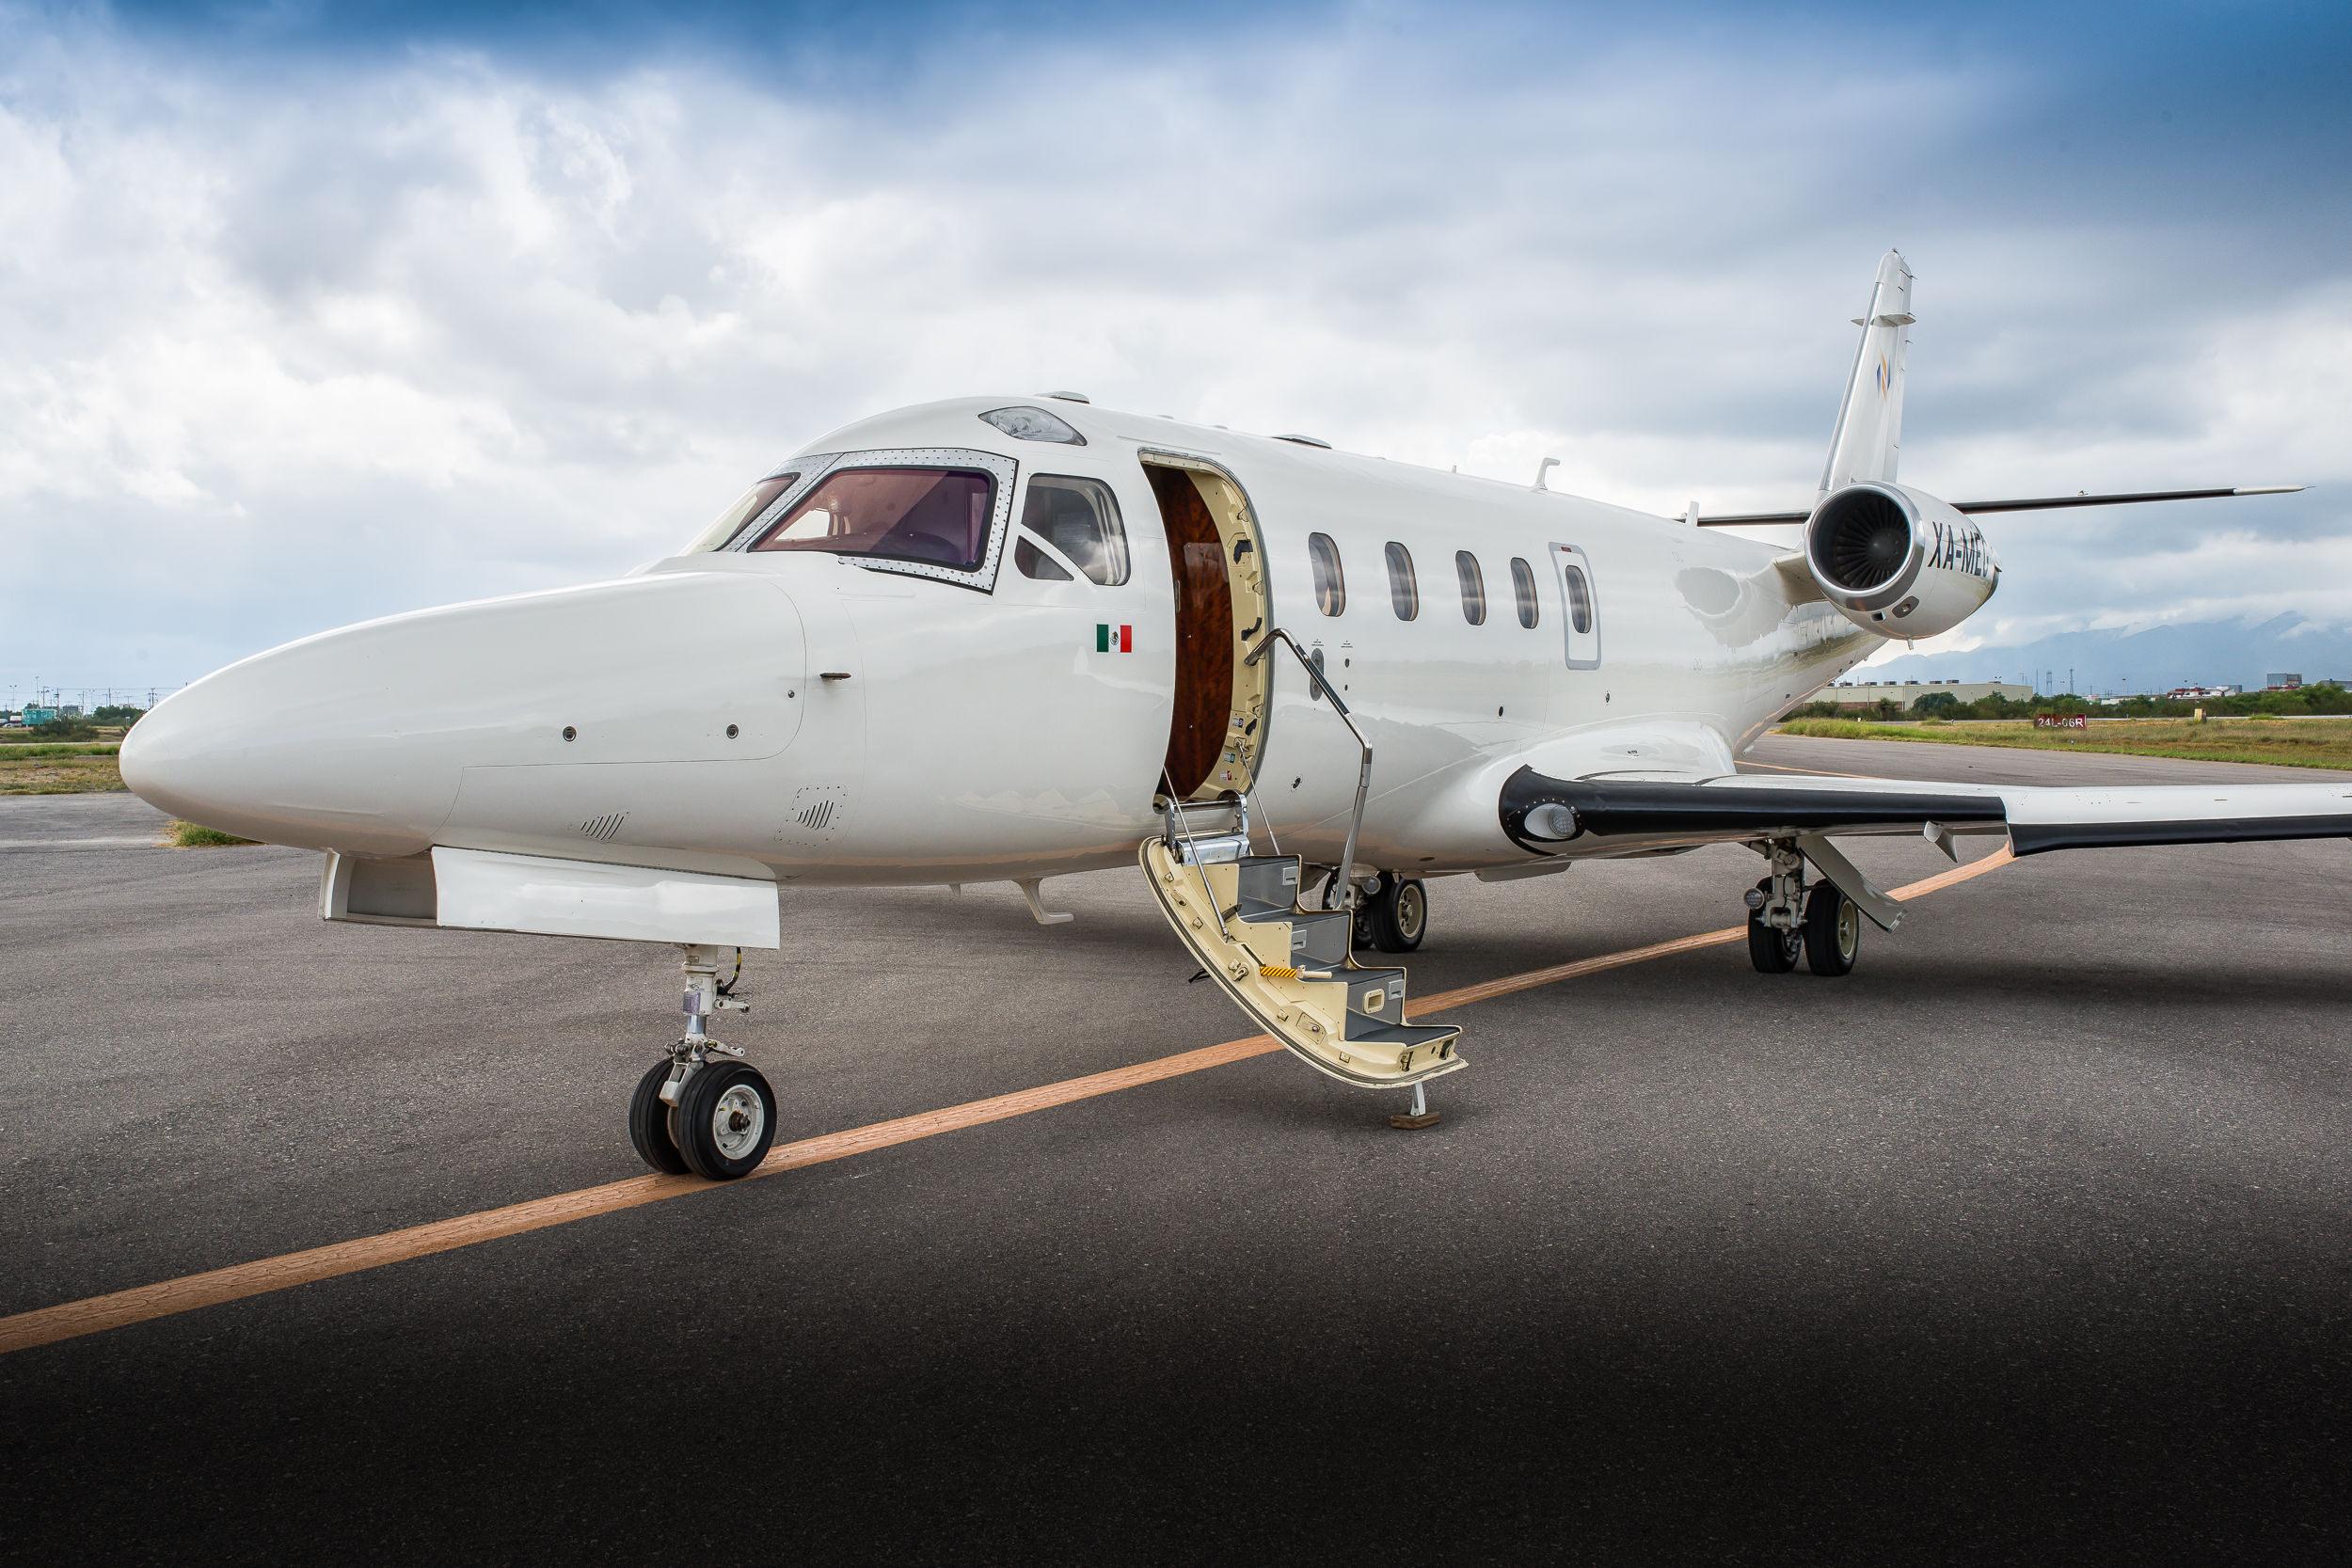 Aircraft Listing - Gulfstream G100 listed for sale